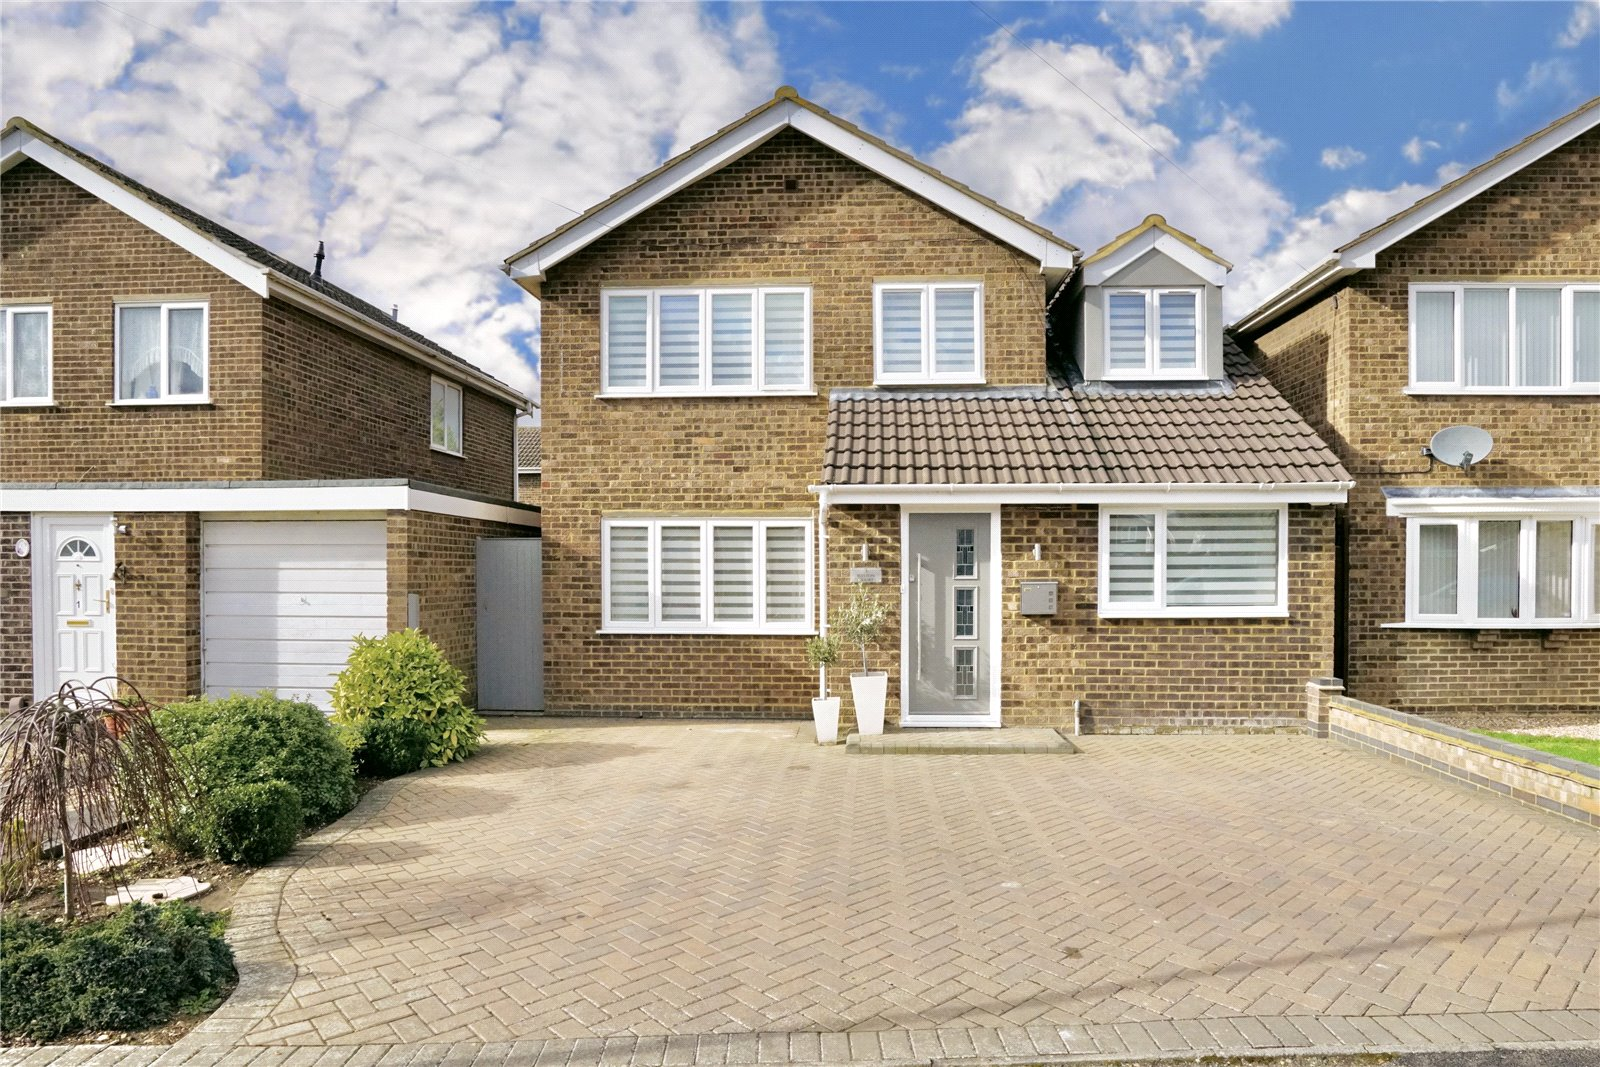 4 bed house for sale in Weston Court, Eaton Ford  - Property Image 1